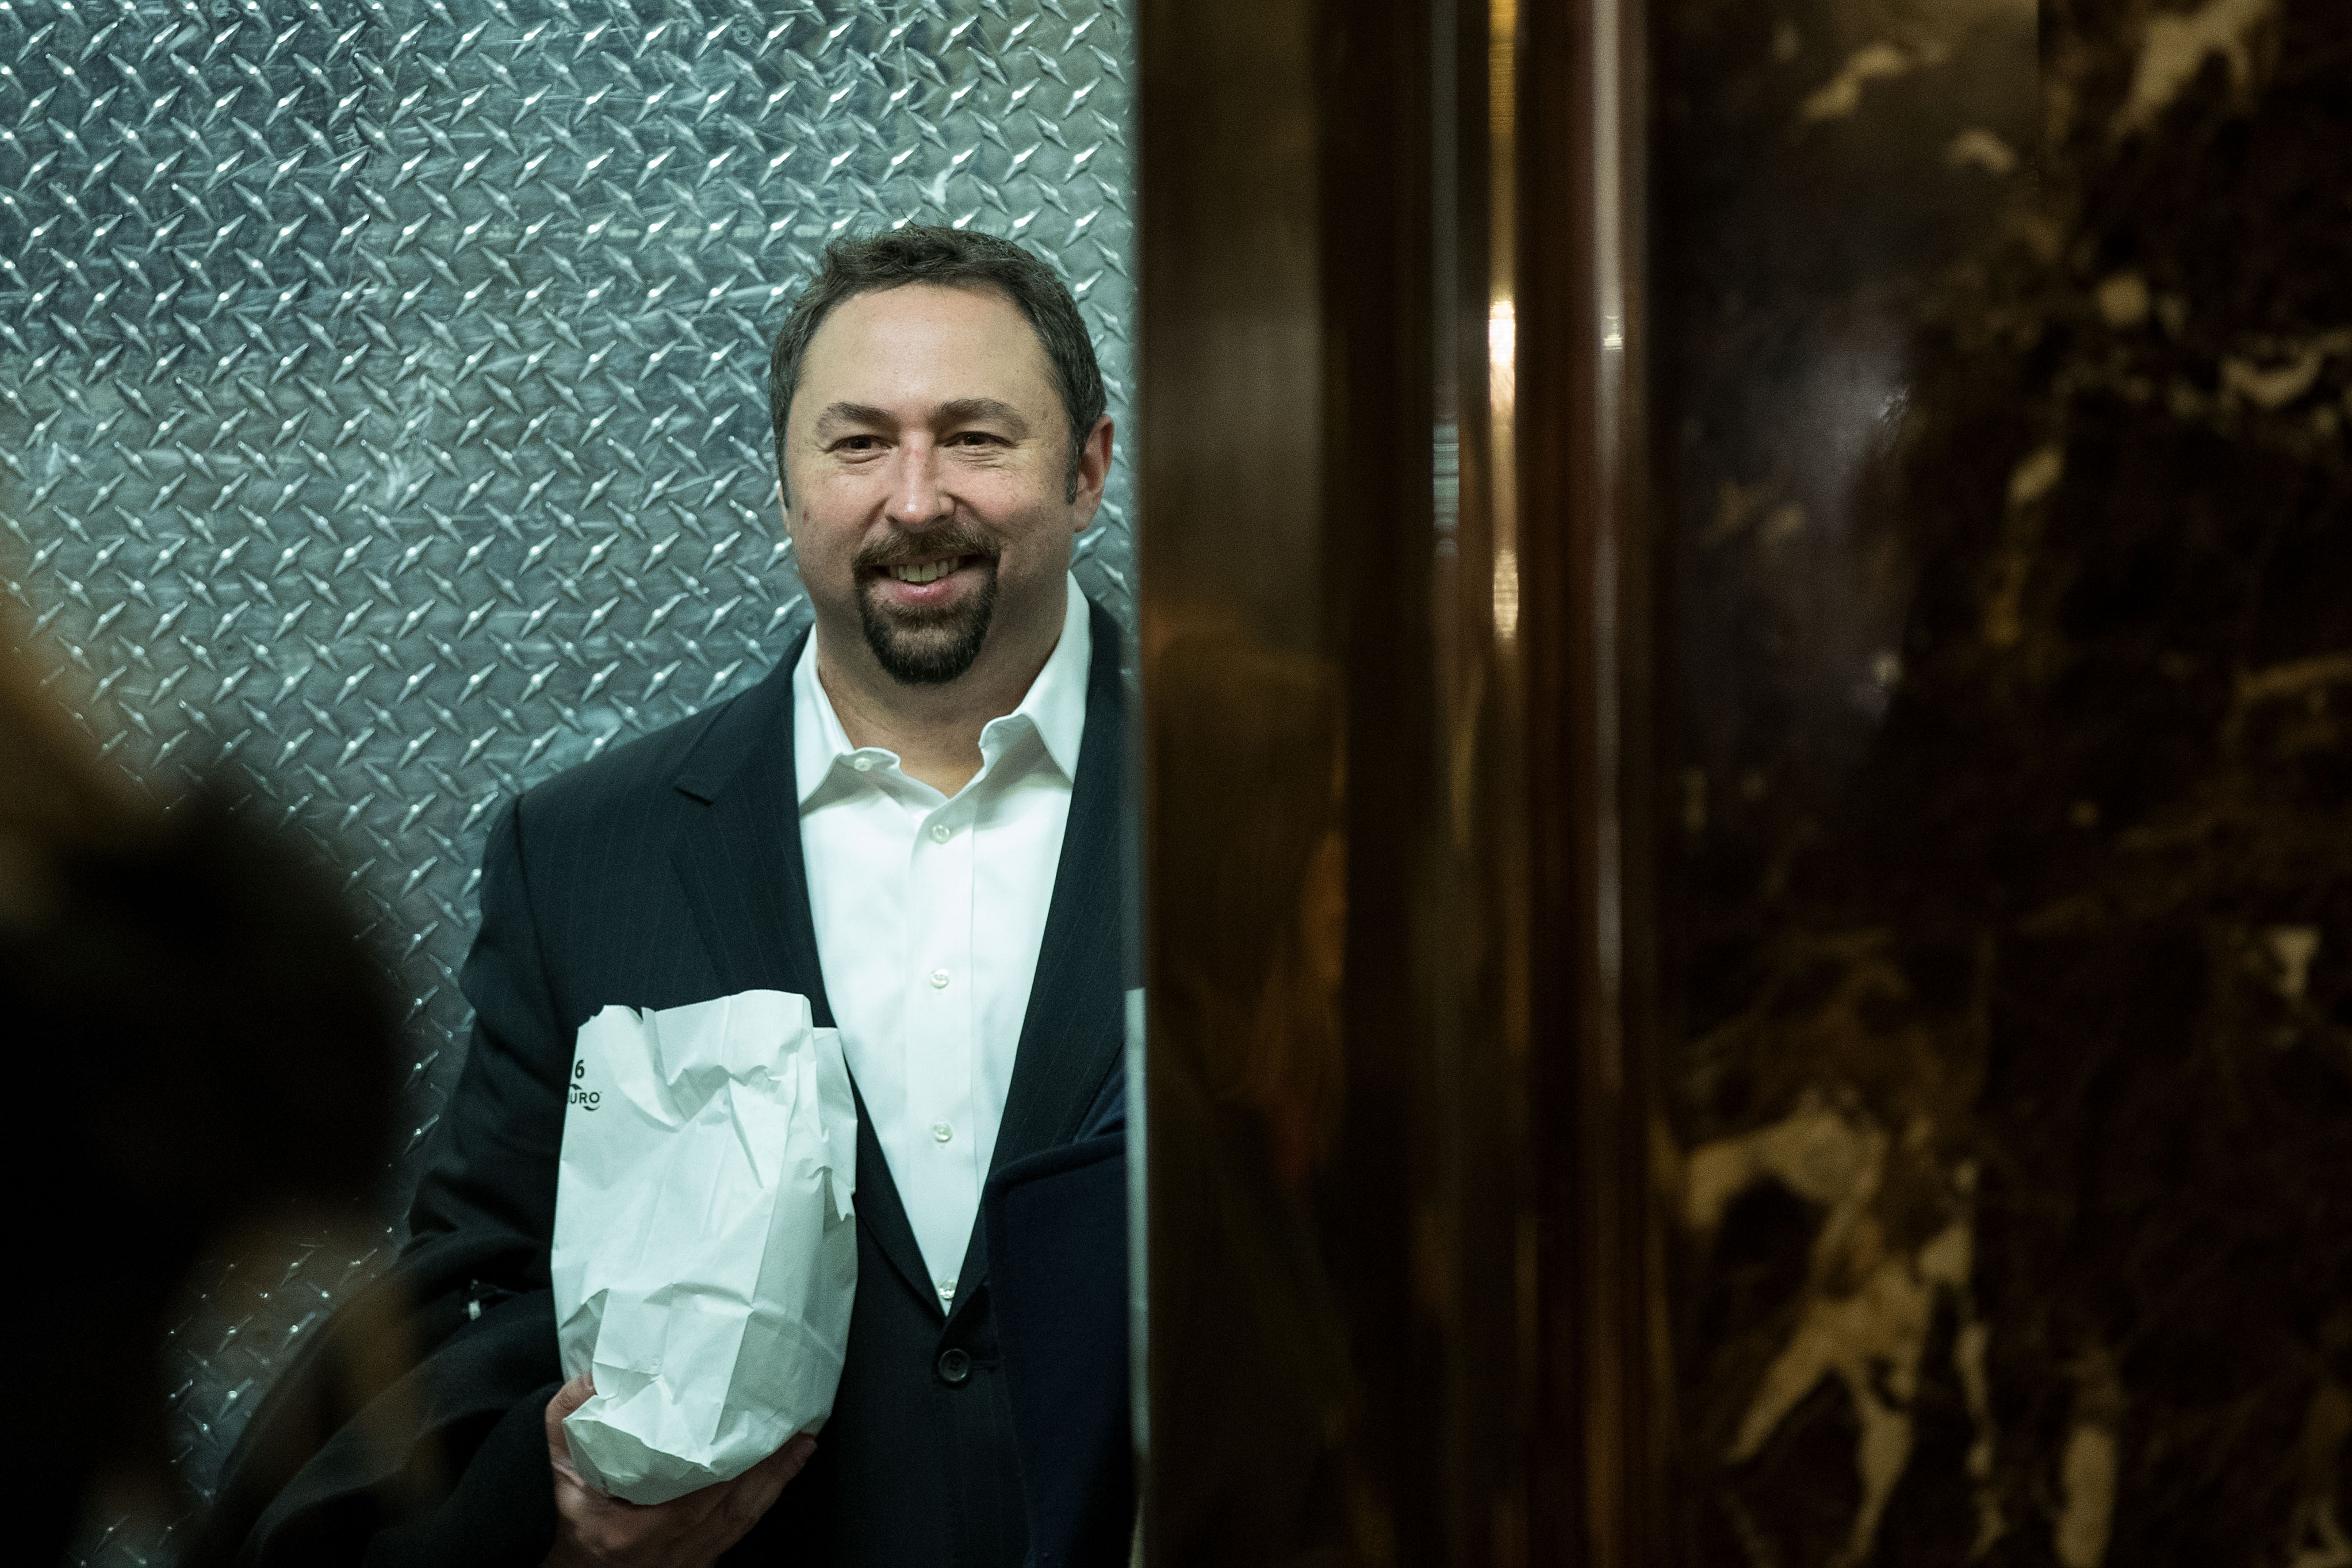 Jason Miller, communications director for the Trump transition team, arrives at Trump Tower, December 8, 2016, in New York City (Getty Images)